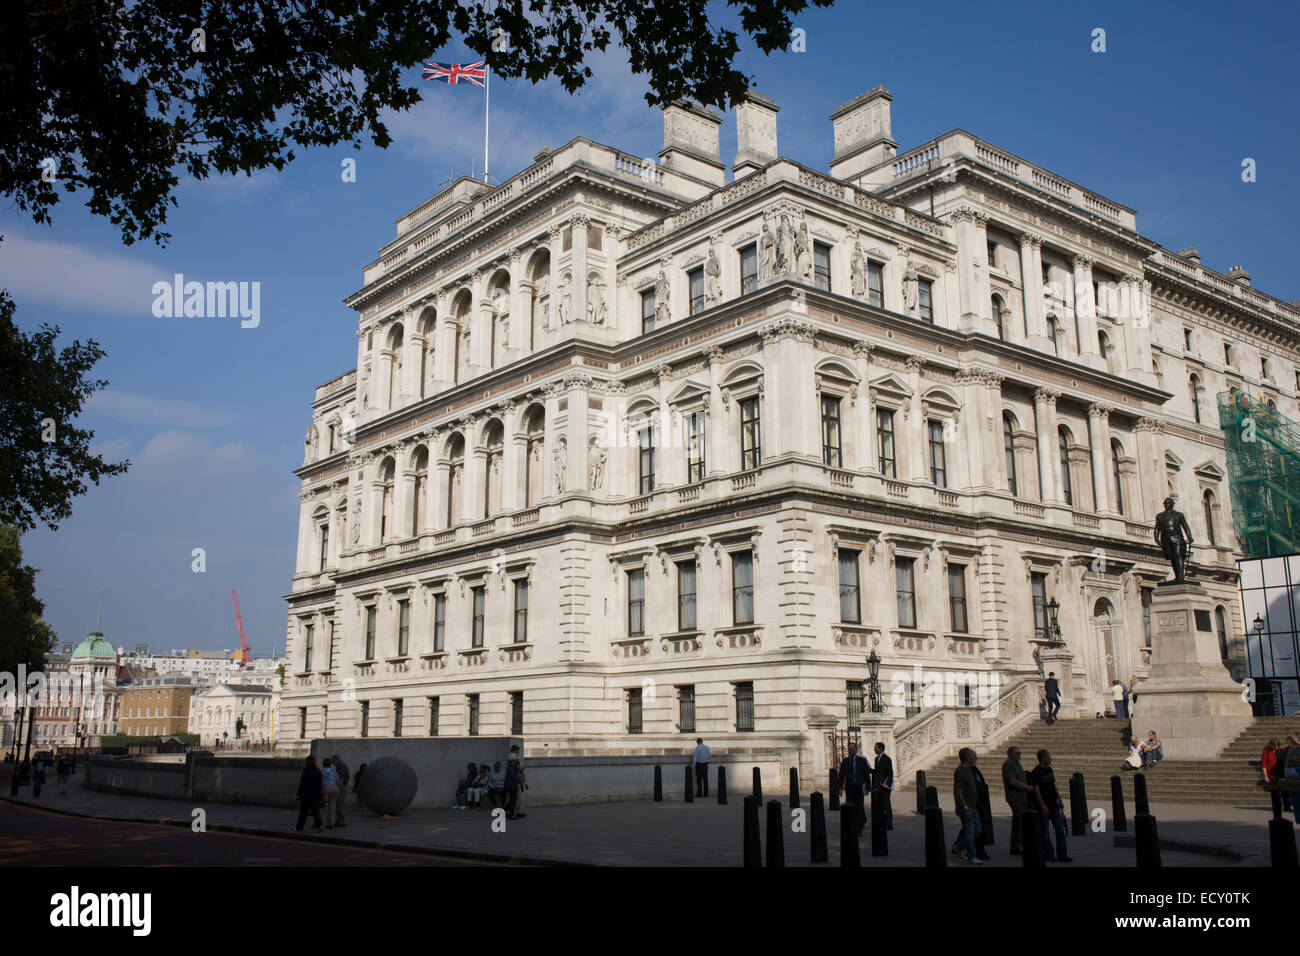 The italianate style the foreign and commonwealth office main stock photo royalty free image - Foreign and colonial office ...